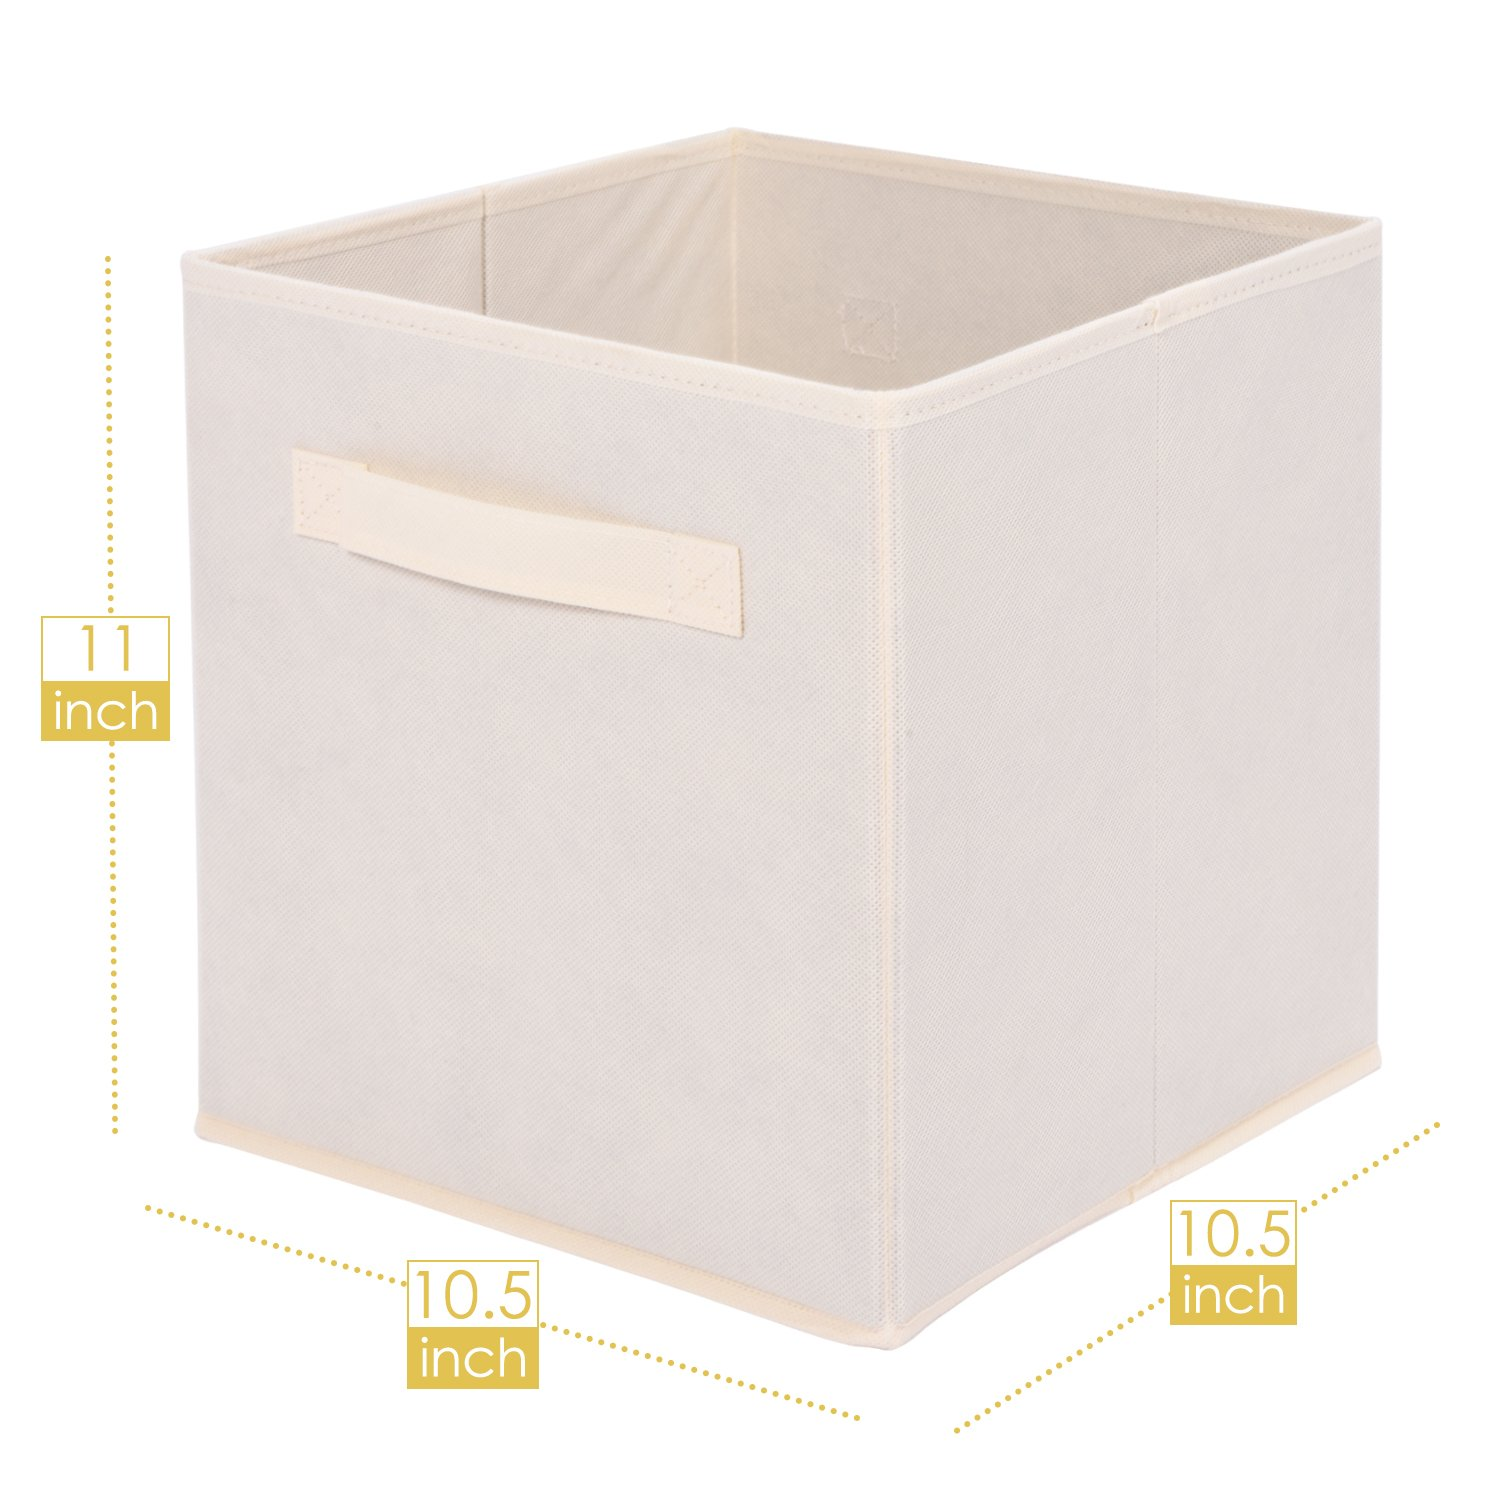 MaidMAX Cloth Storage Bin with Dual Handles for Home Closet Nursery Drawers Organizer, Foldable, Beige, Set of 6